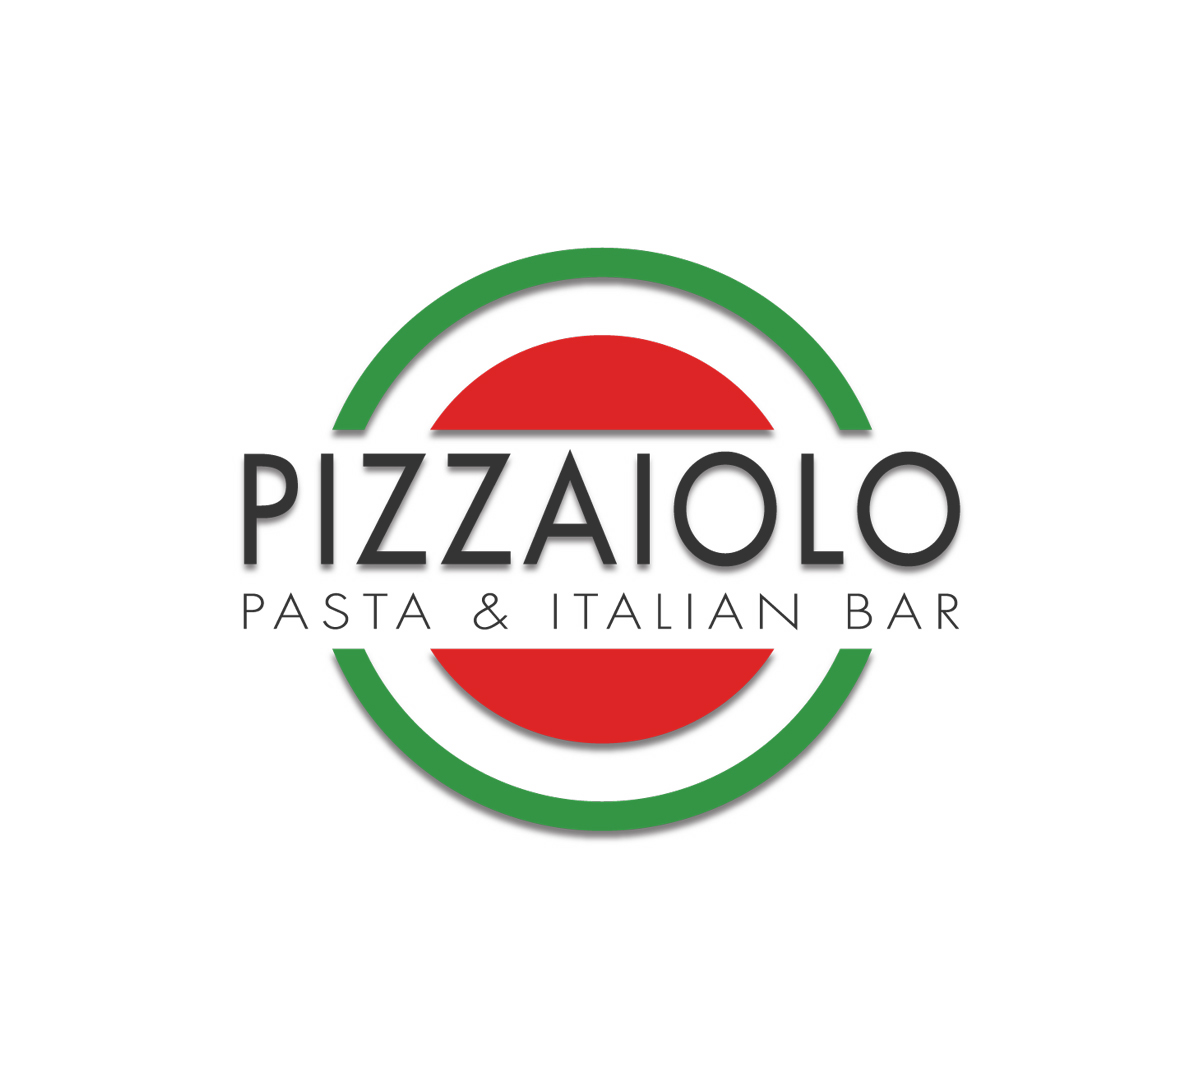 Bold Modern Restaurant Logo Design For Pizzaiolo Pasta Italian Bar By Tony Price Design 497916